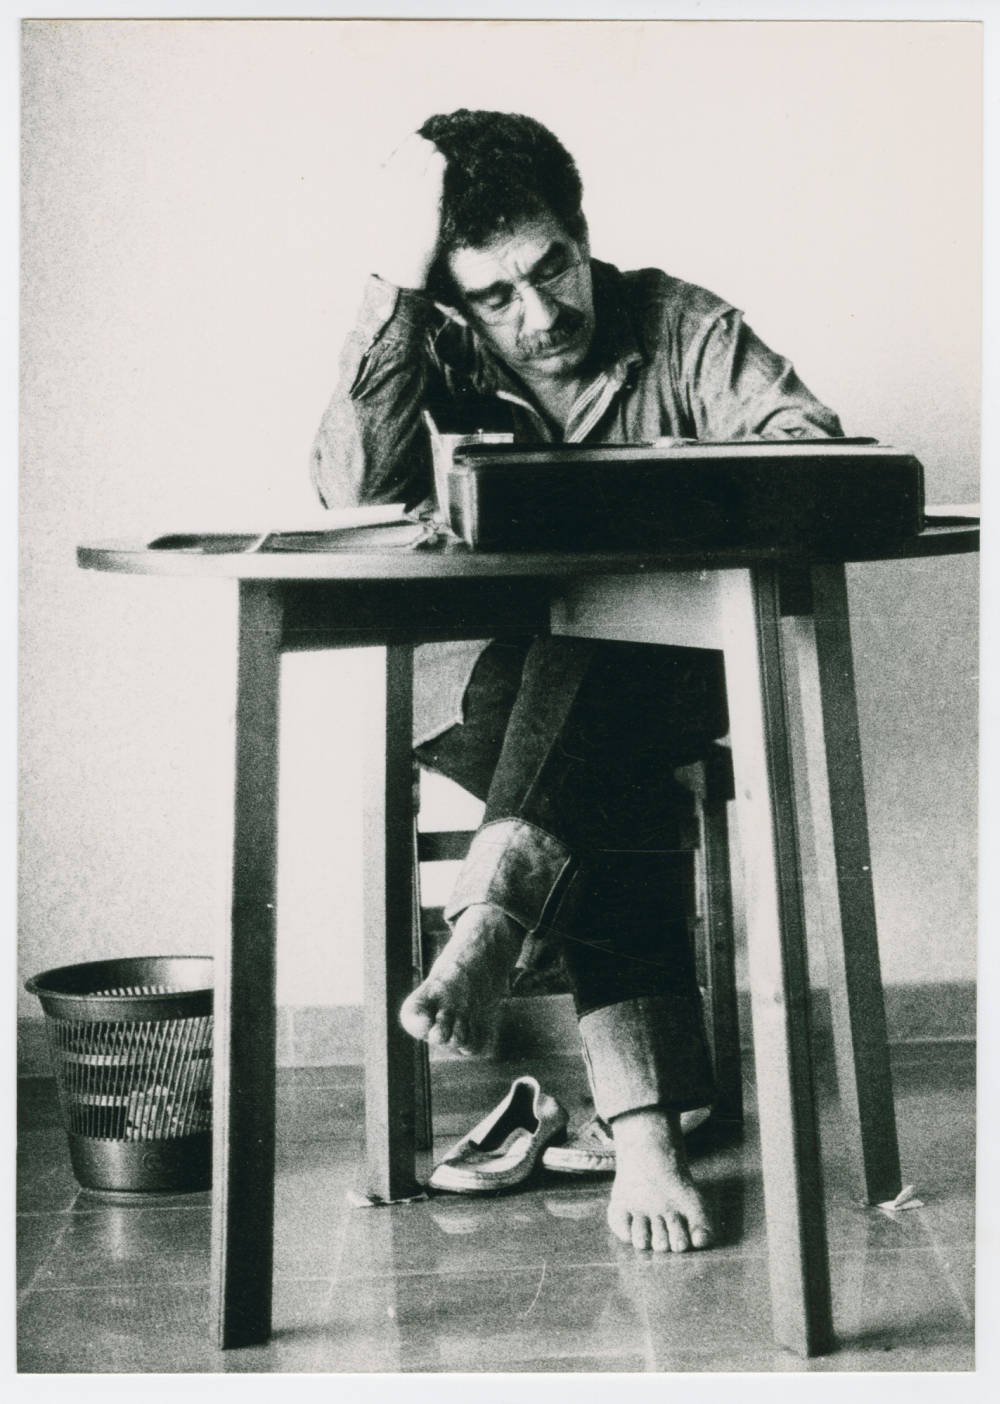 Man Writing At Desk, Head Propped by One Hand